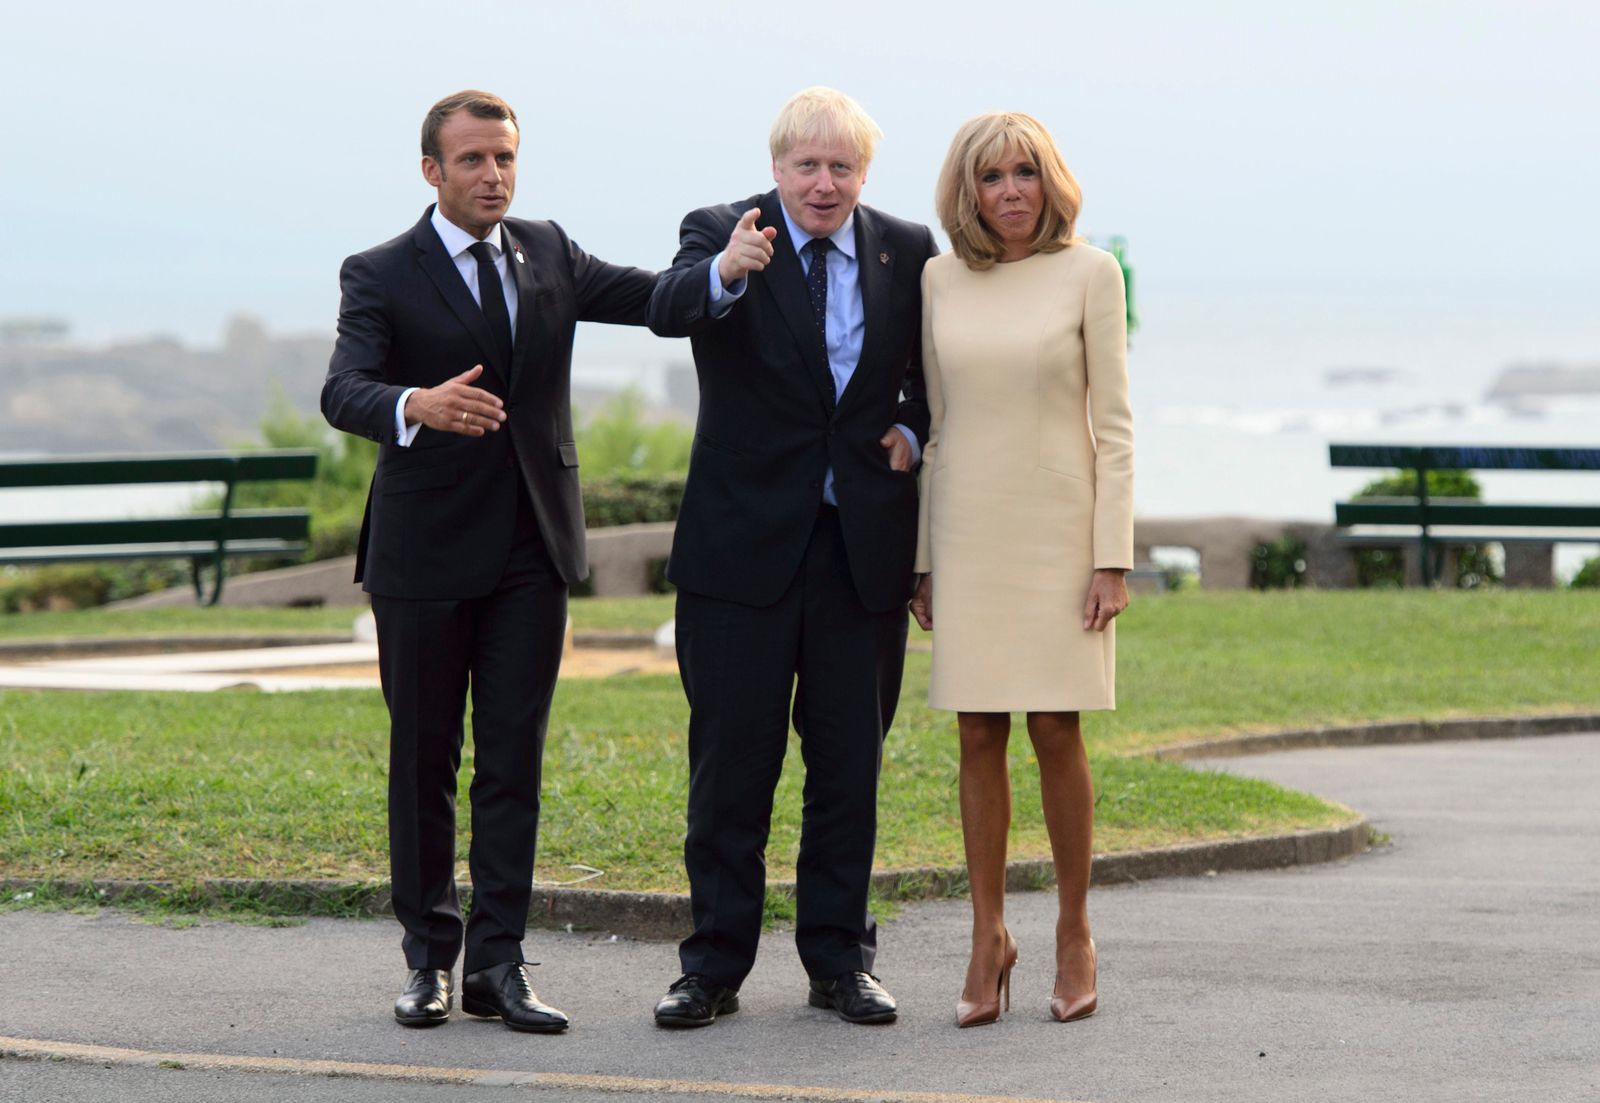 Britian's Prime Minister Boris Johnson, center, is greeted by President of France Emmanuel Macron, left, and wife Brigitte Macron as he arrives to the G7 Summit in Biarritz, France, Saturday, Aug. 24, 2019. (Sean Kilpatrick/The Canadian Press via AP)